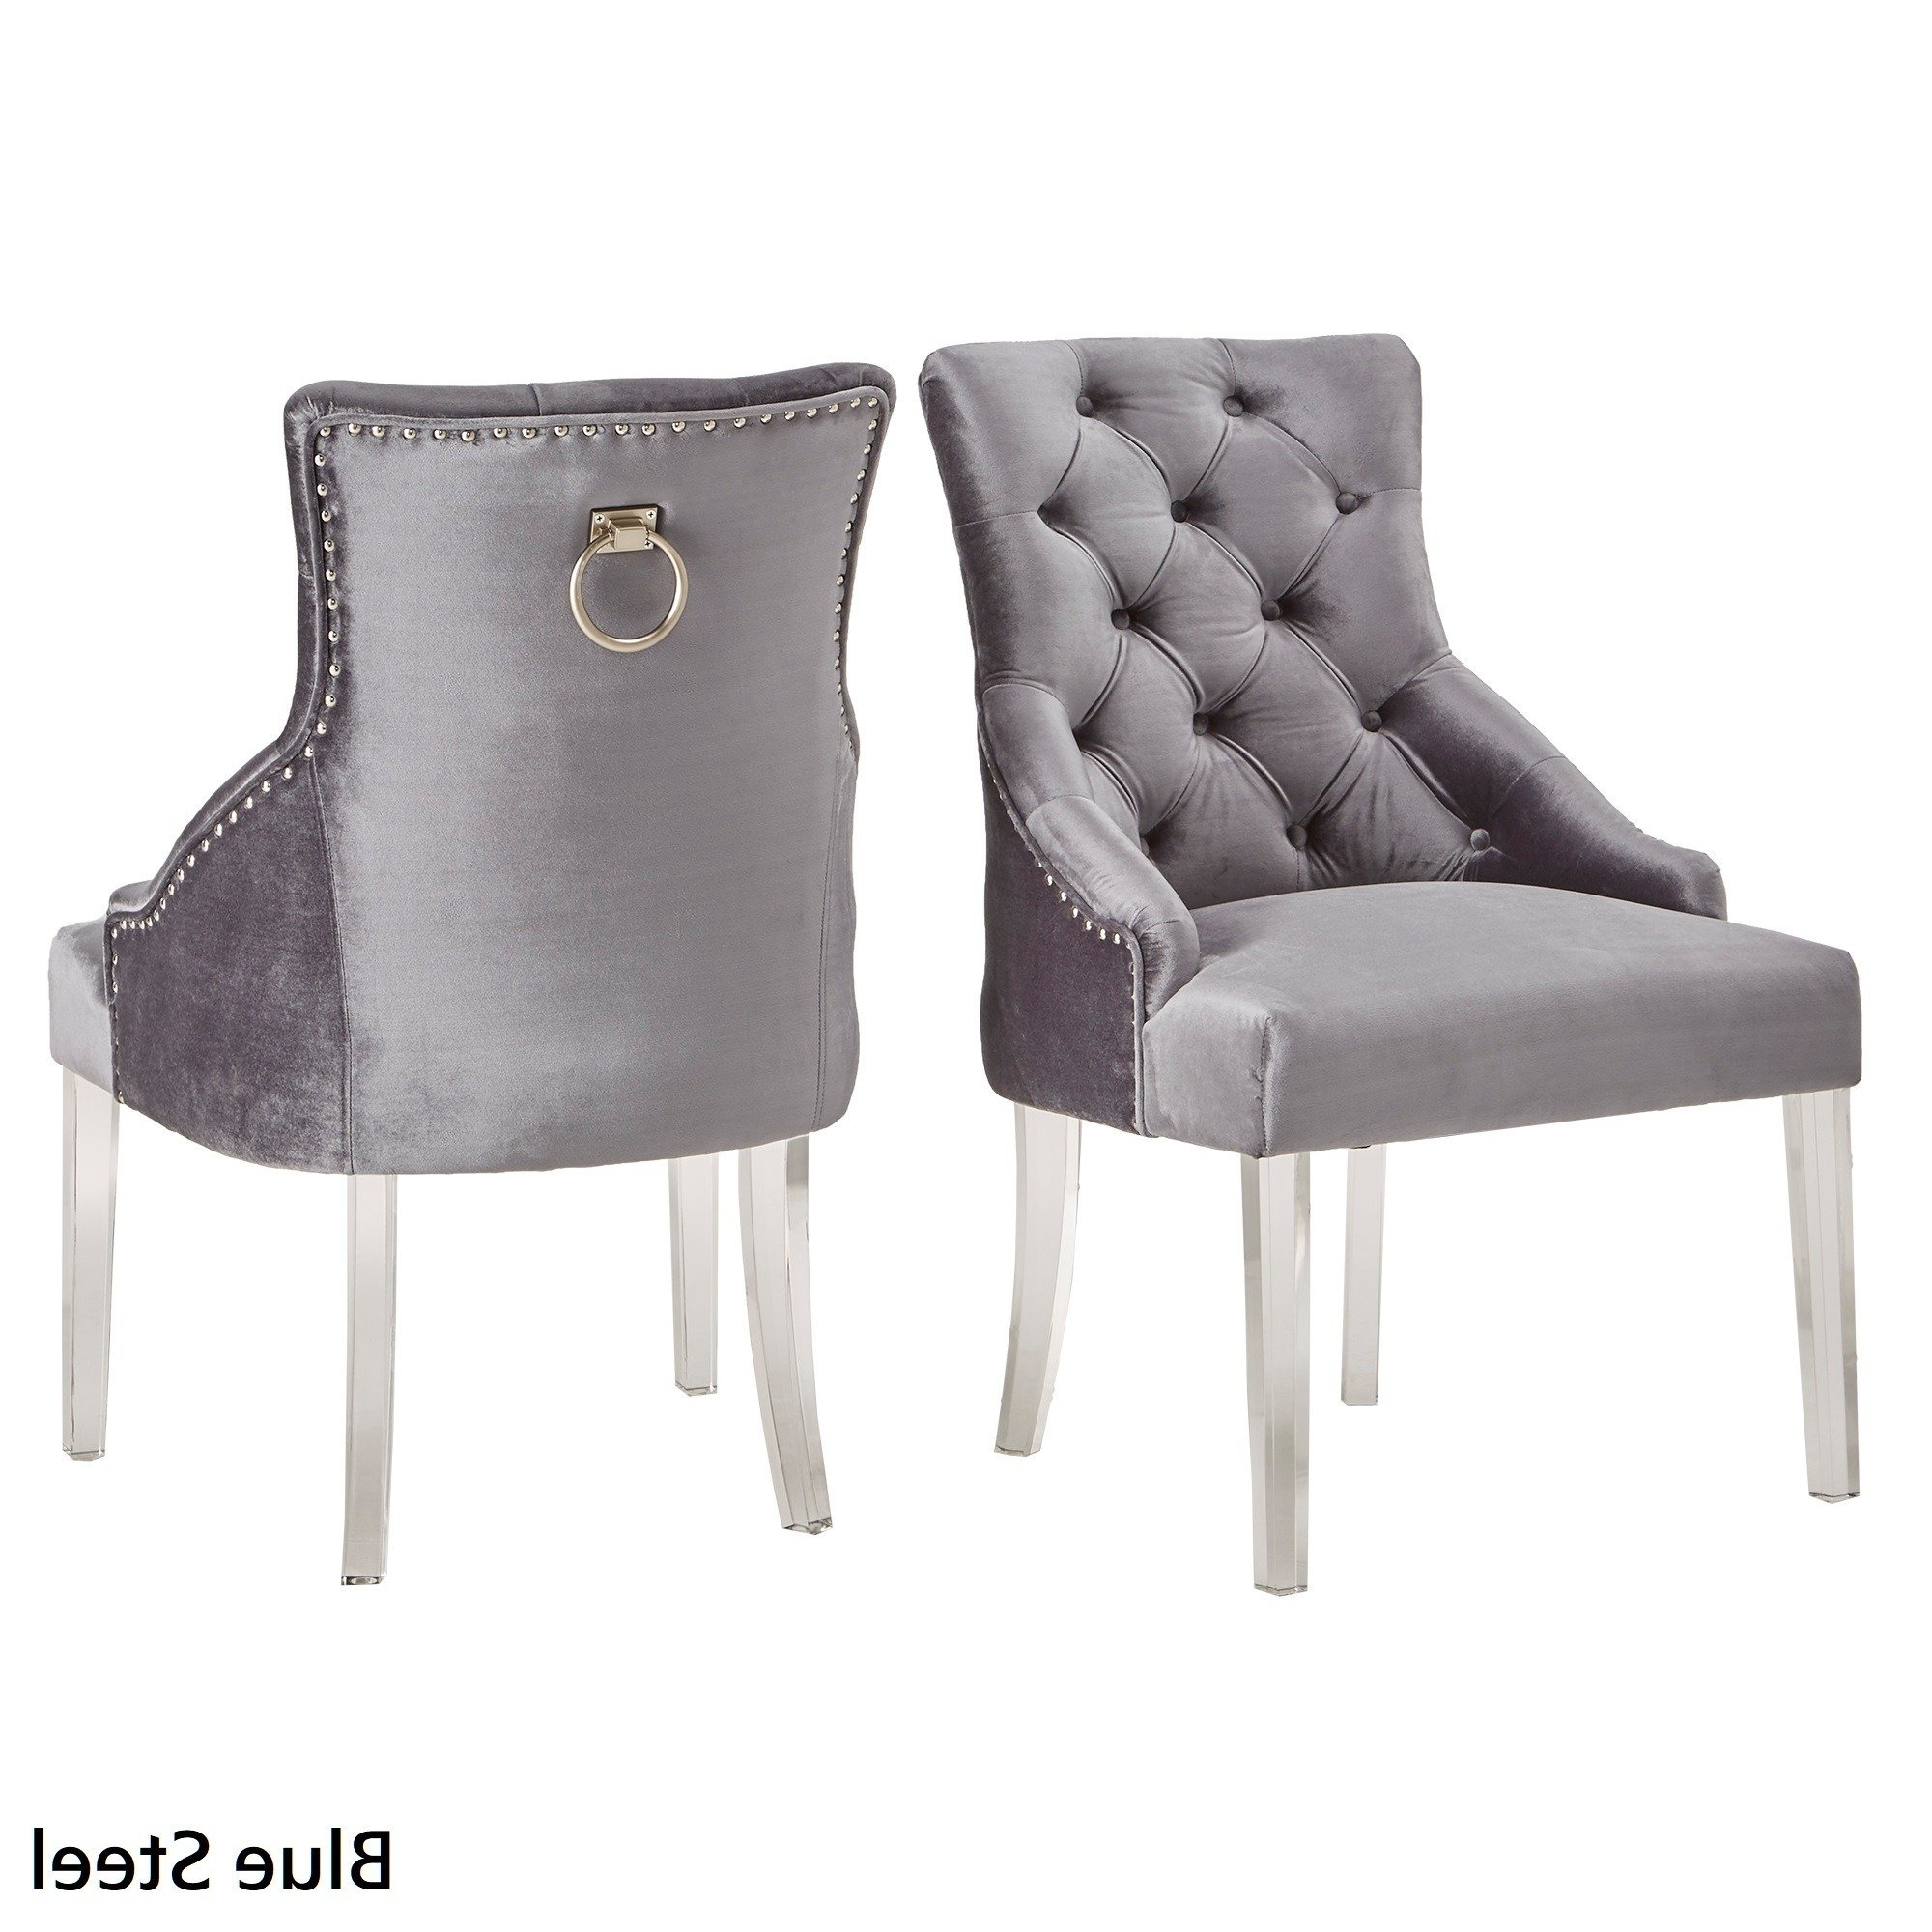 Well Known Gina Blue Leather Sofa Chairs Regarding Shop Gina Velvet Tufted Dining Chair (Set Of 2) With Acrylic Legs (View 20 of 20)